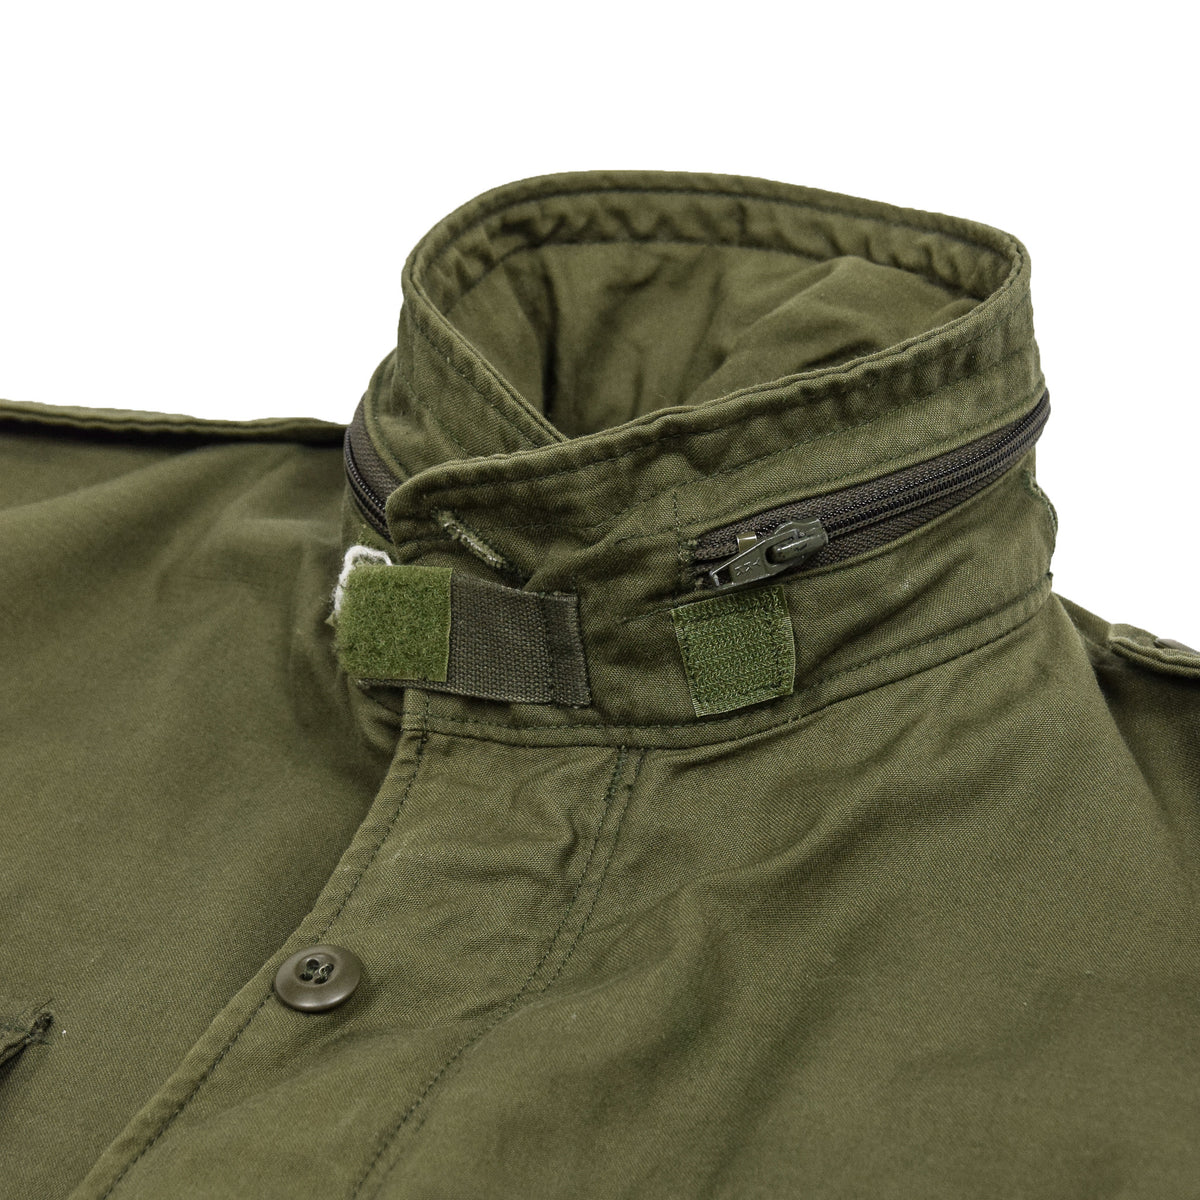 Vintage 80s M-65 Man's Field Cotton Sateen 0G-107 Green US Army Coat M collar